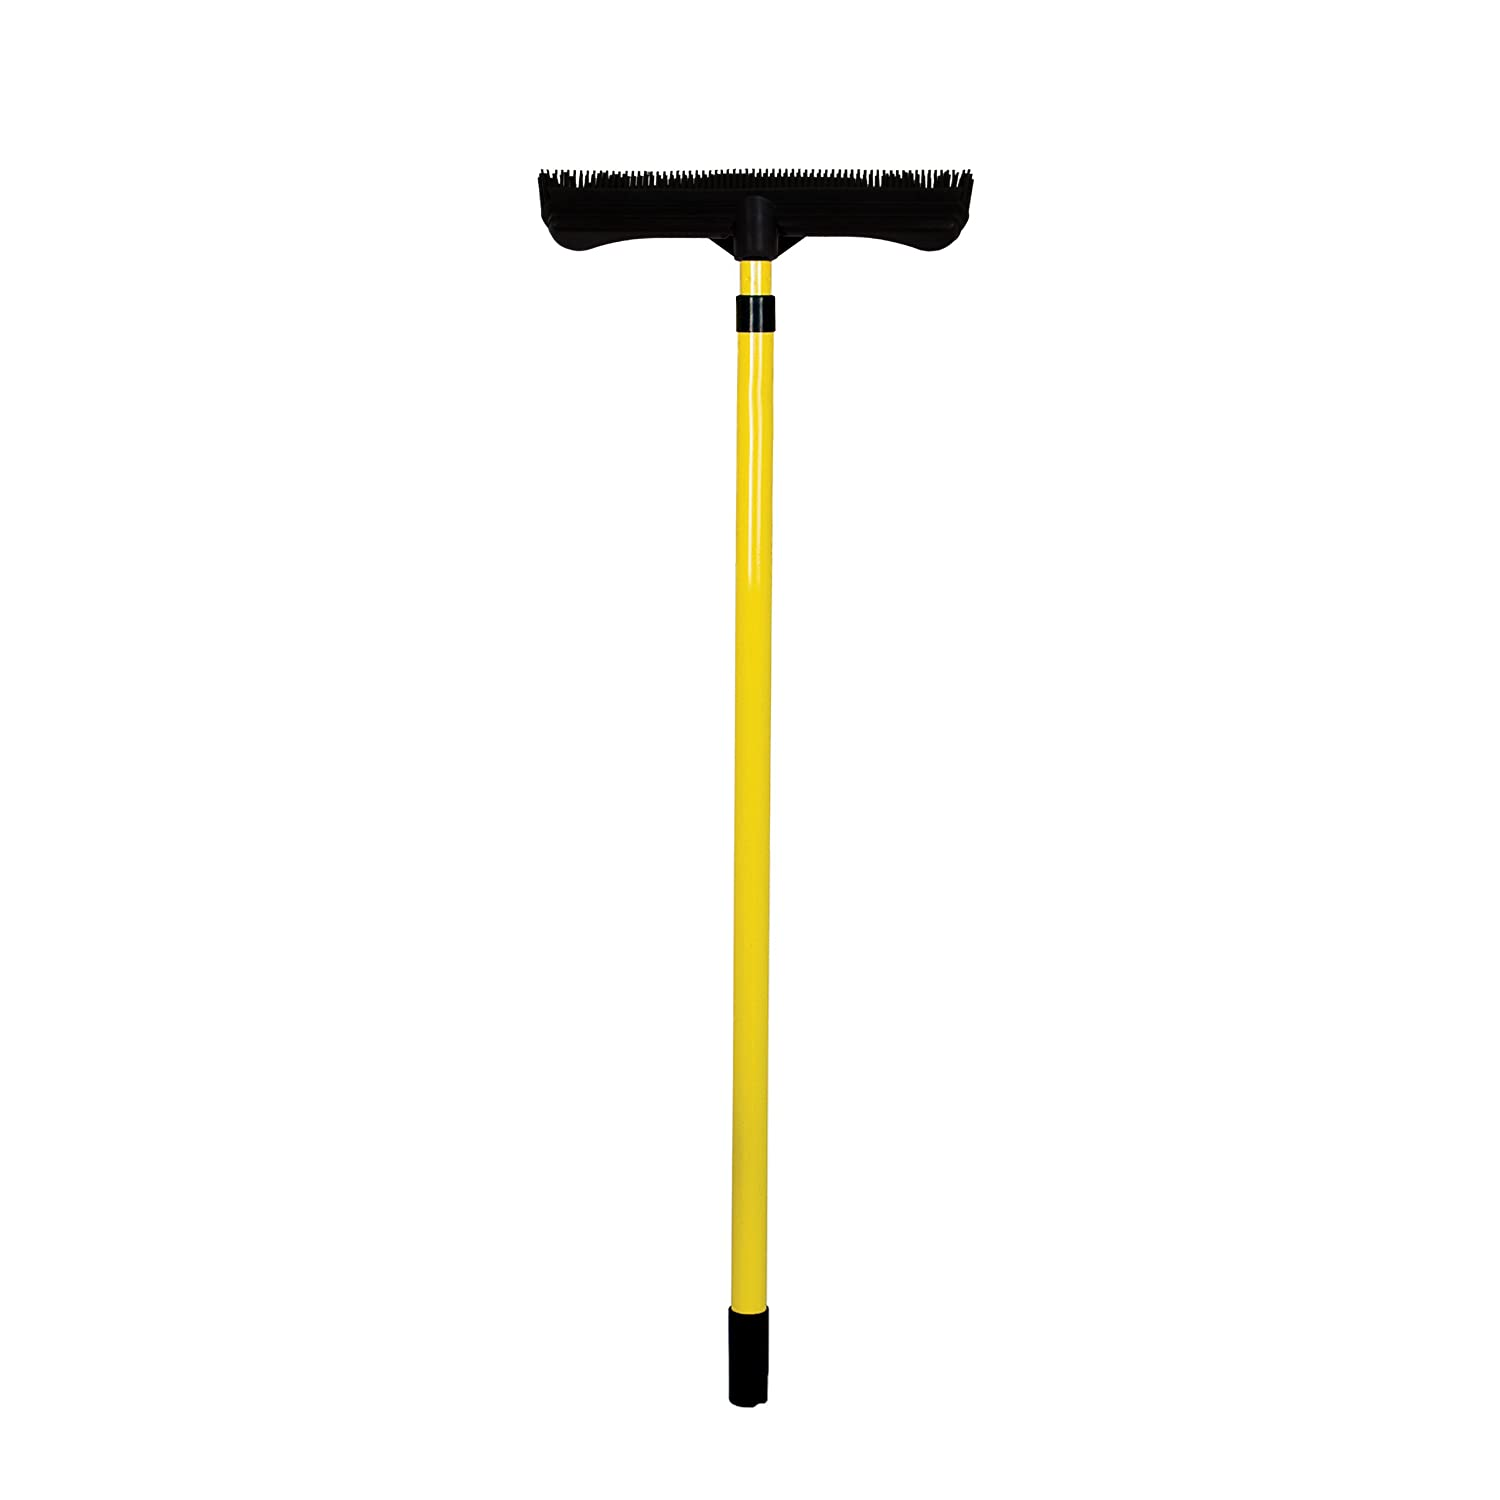 Evriholder FURemover Broom